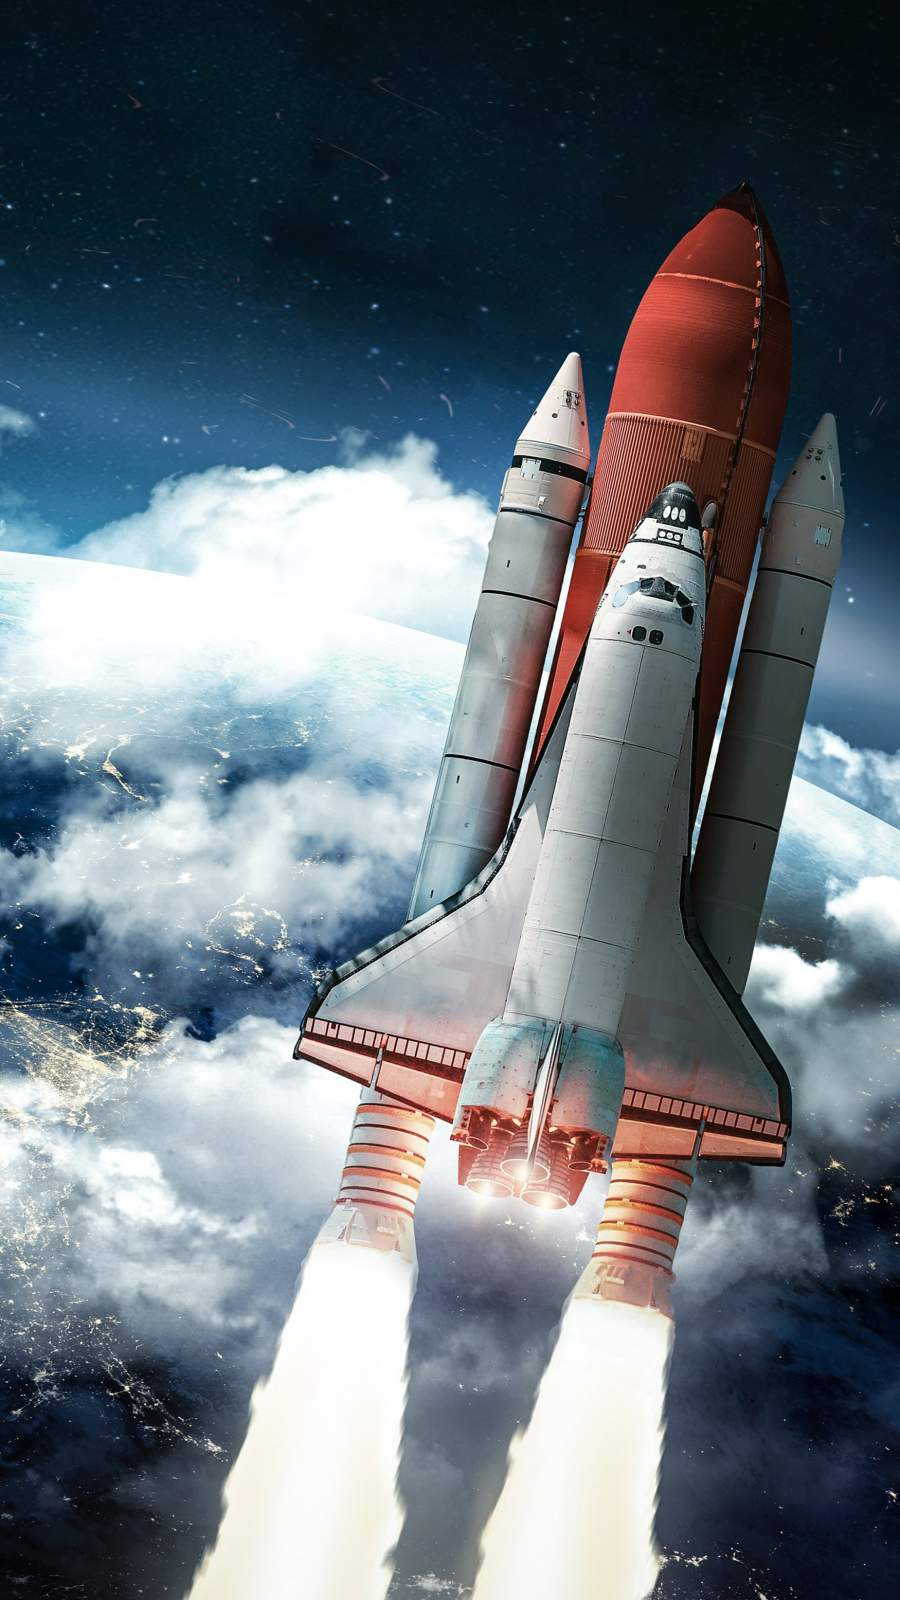 Rocket Heading Towards Space iPhone Wallpaper